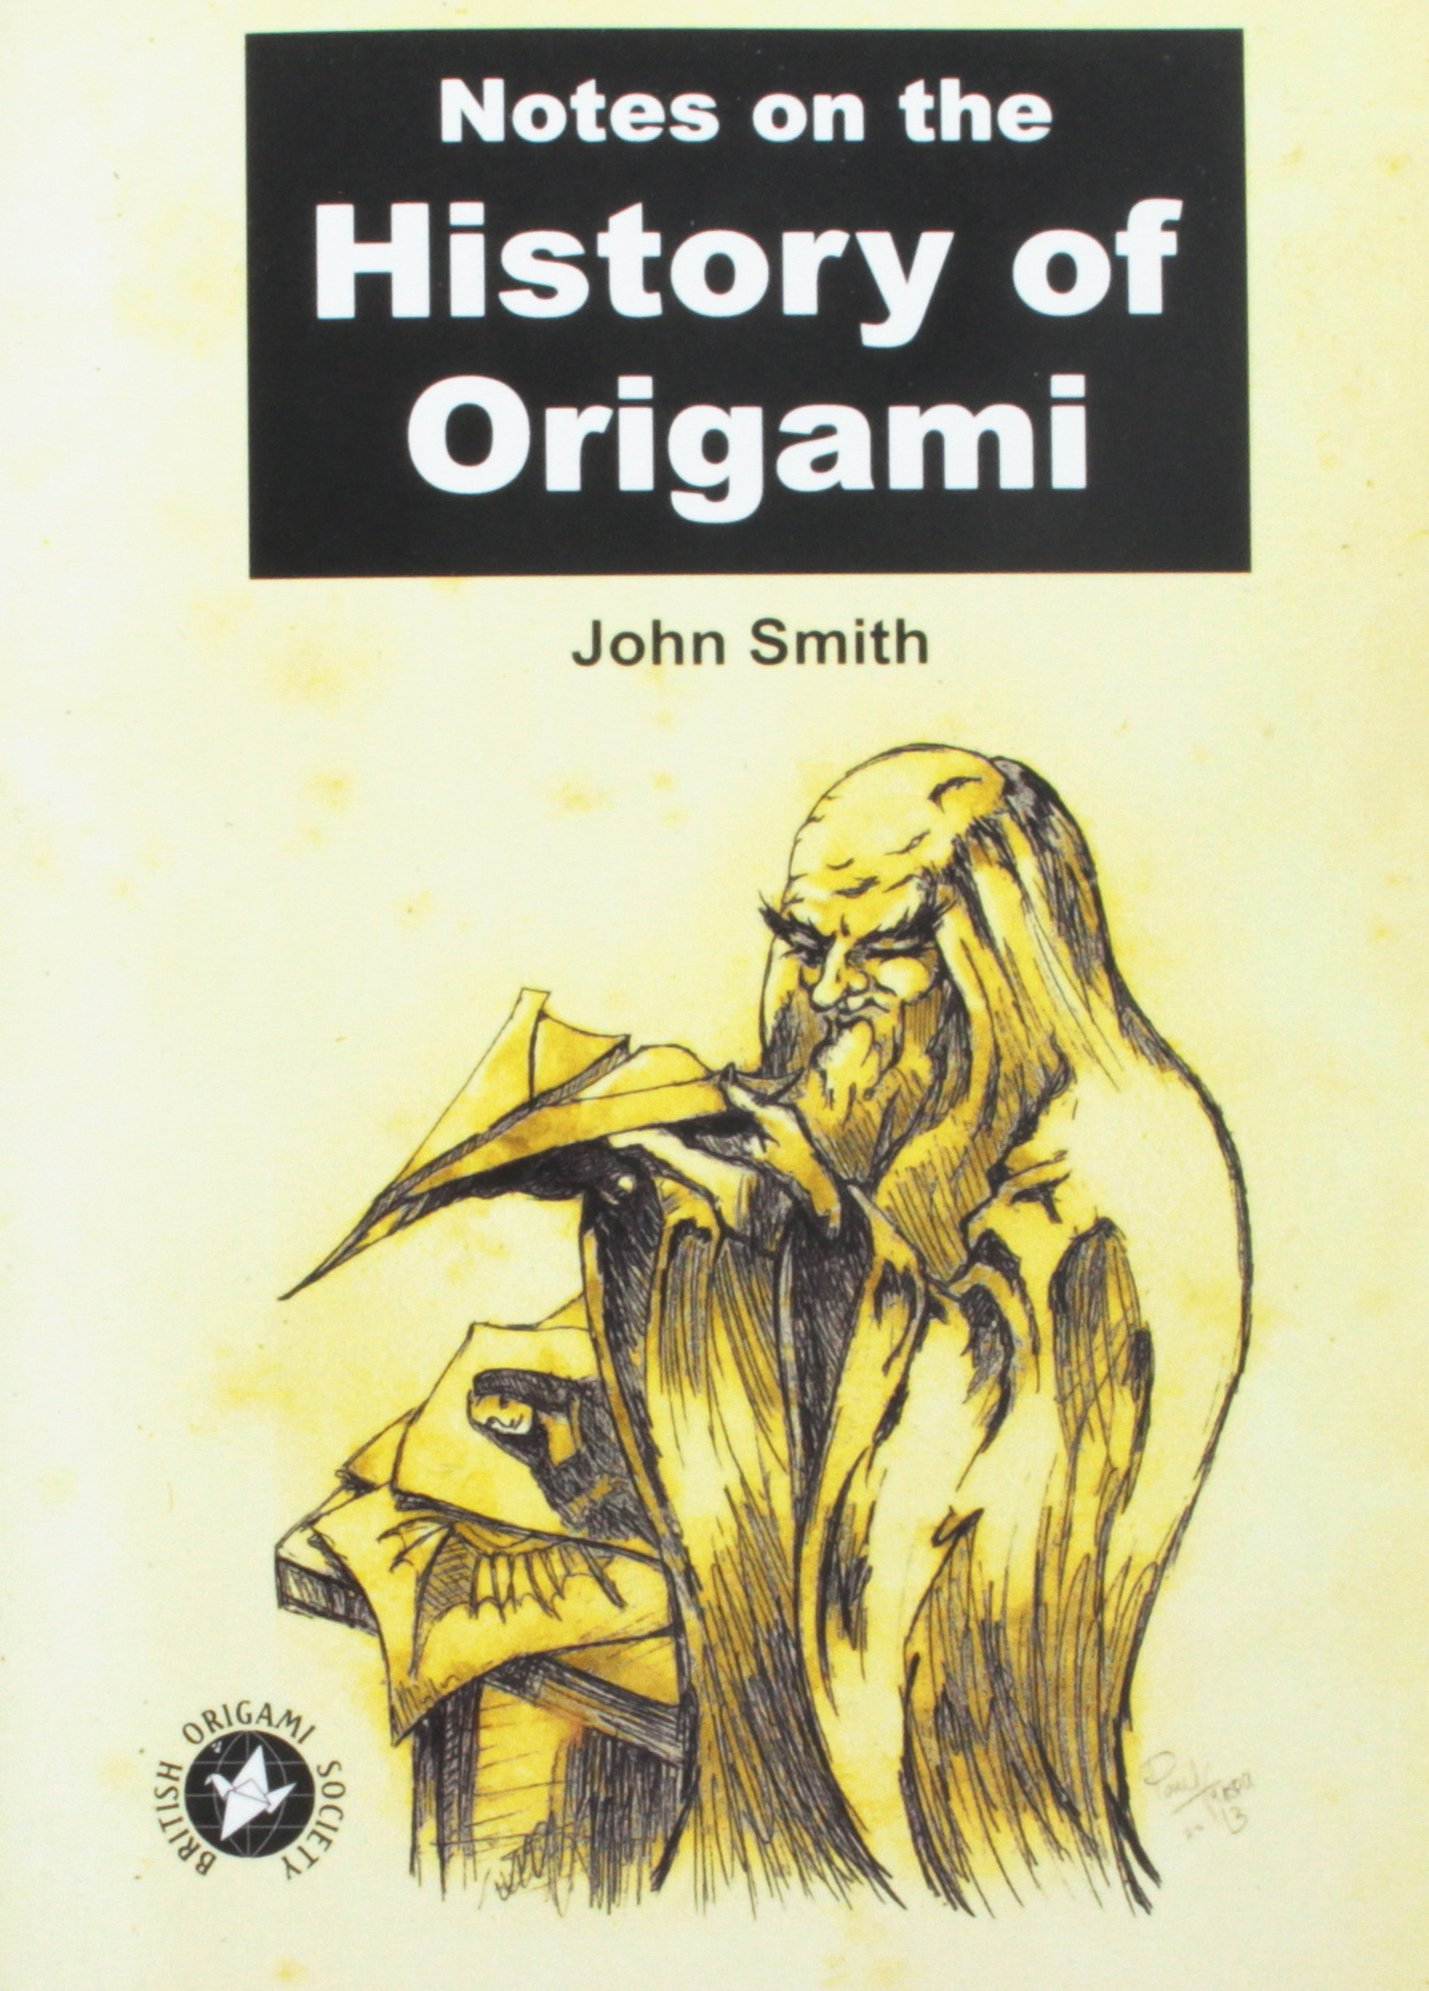 Notes on the history of origami john smith 9781495215001 amazon notes on the history of origami john smith 9781495215001 amazon books jeuxipadfo Image collections